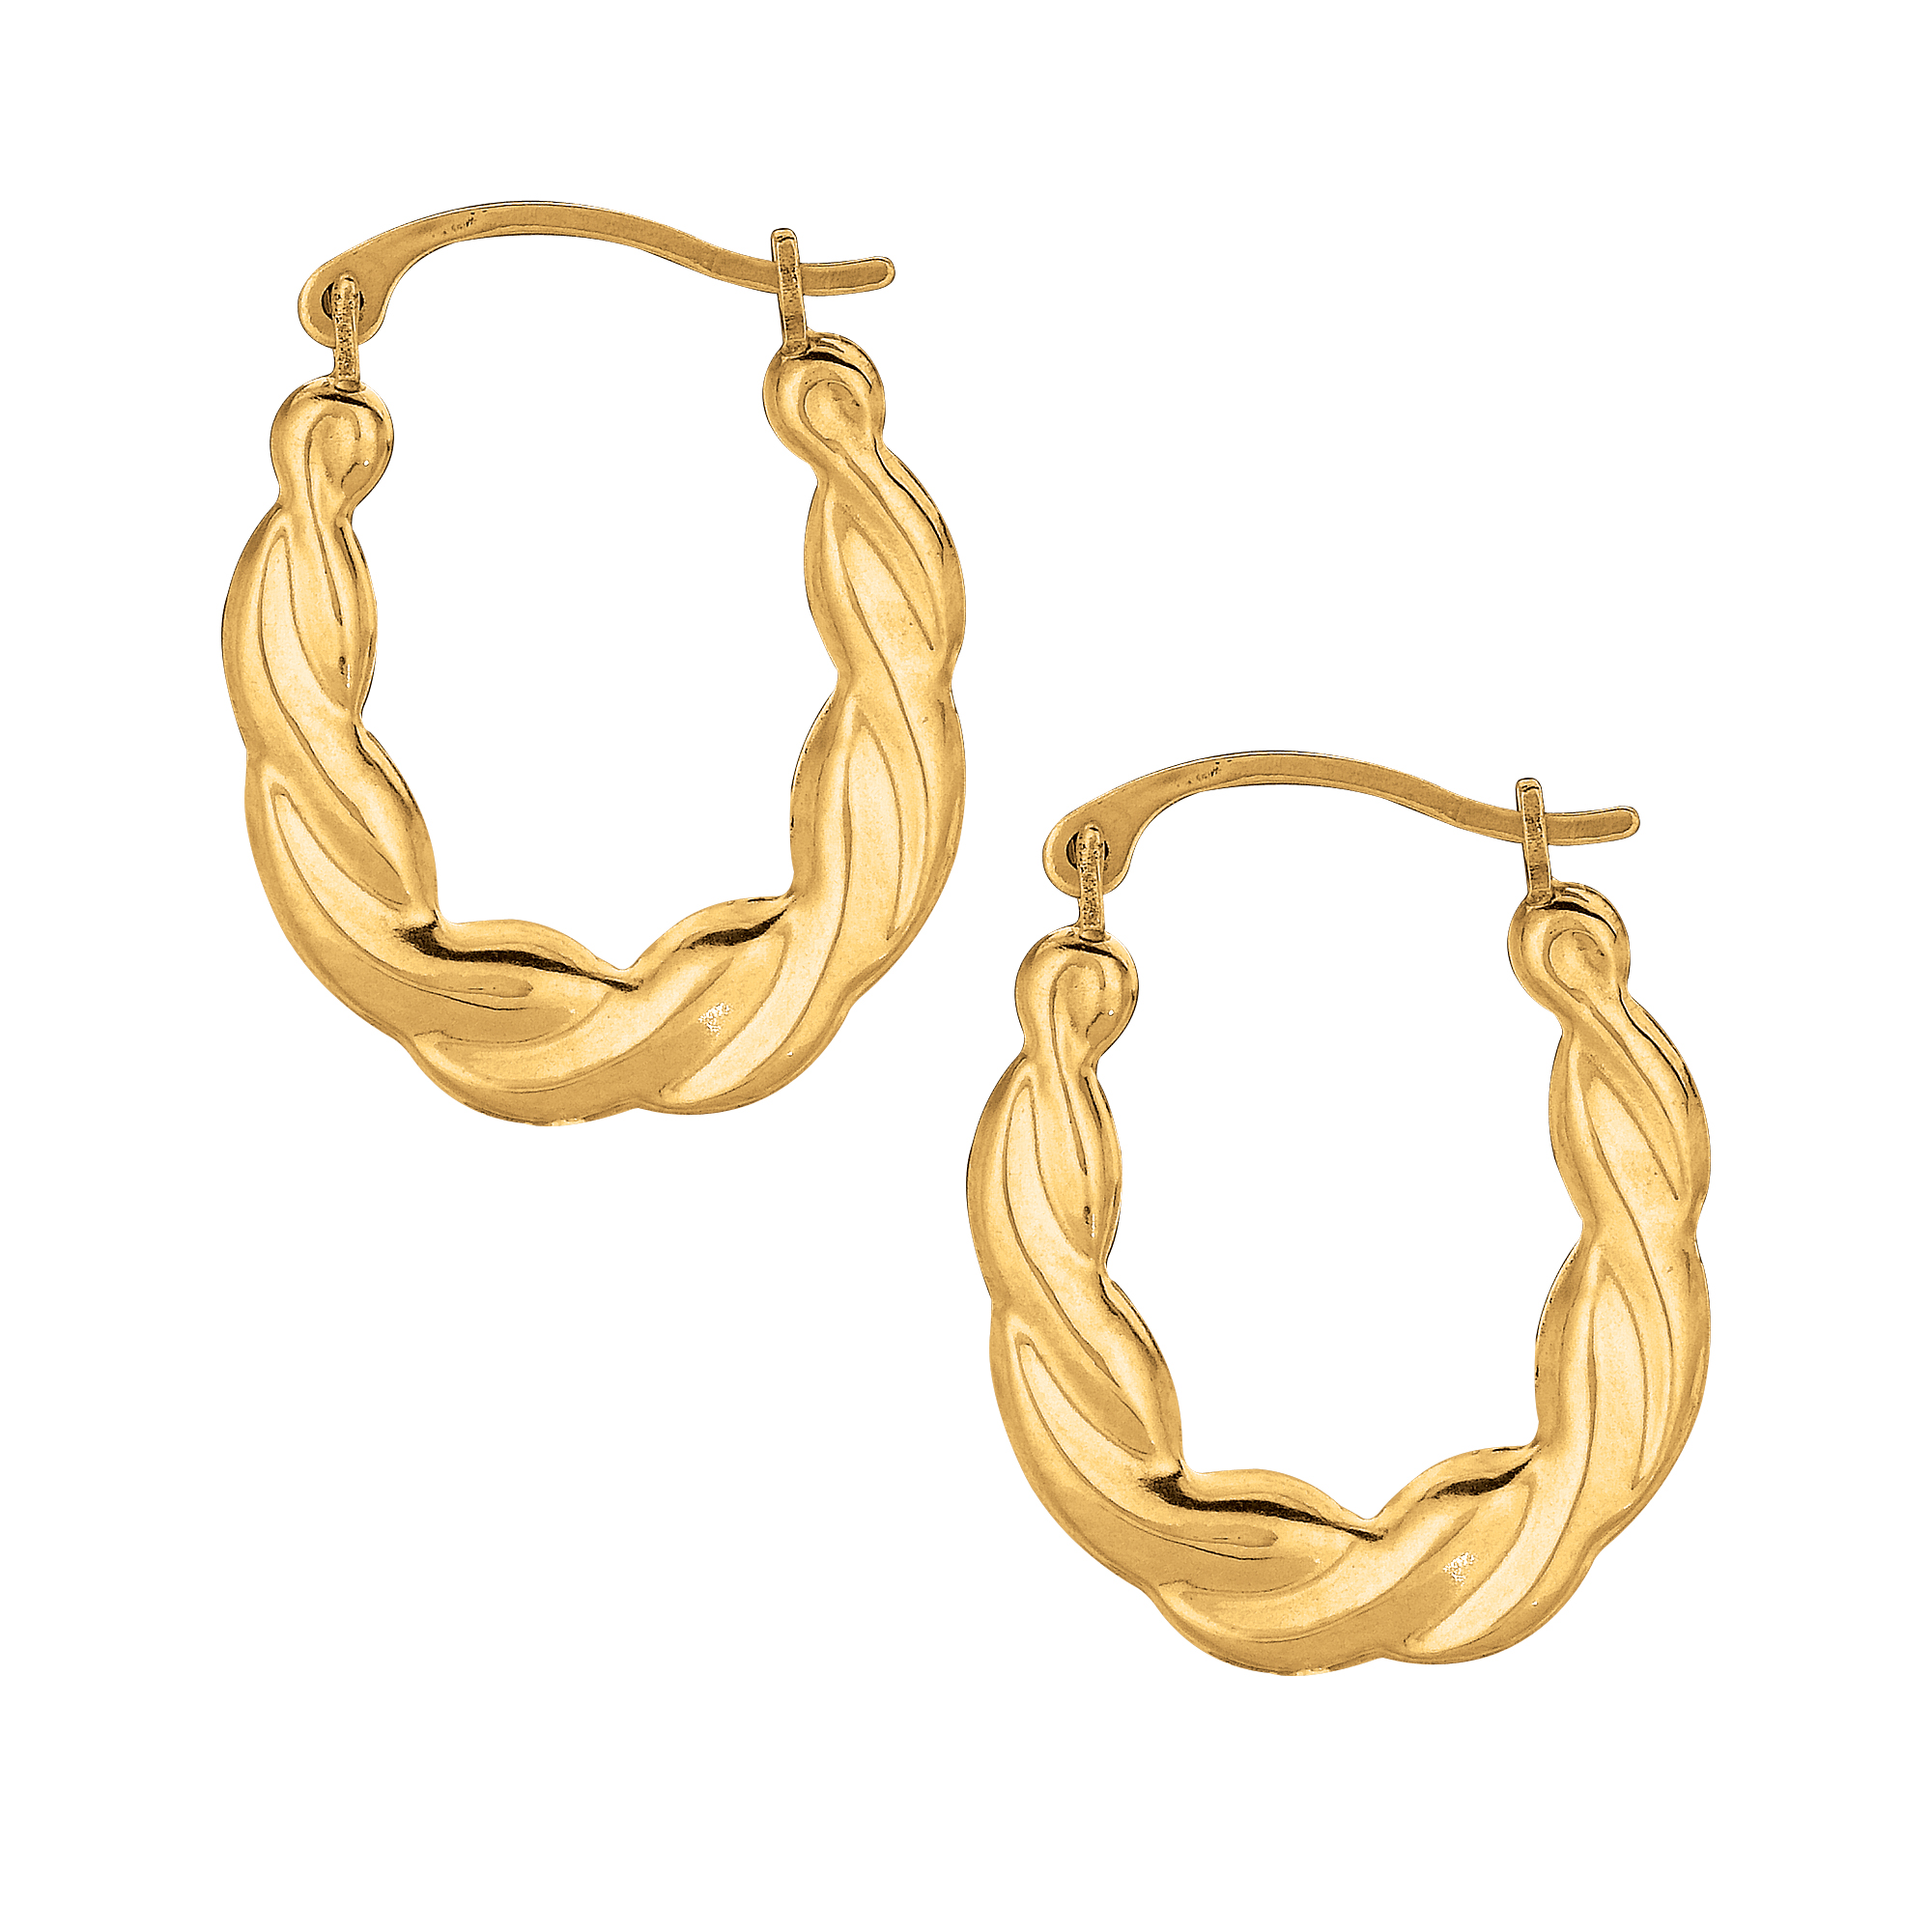 10K Yellow Gold Small Oval Hoop Earring